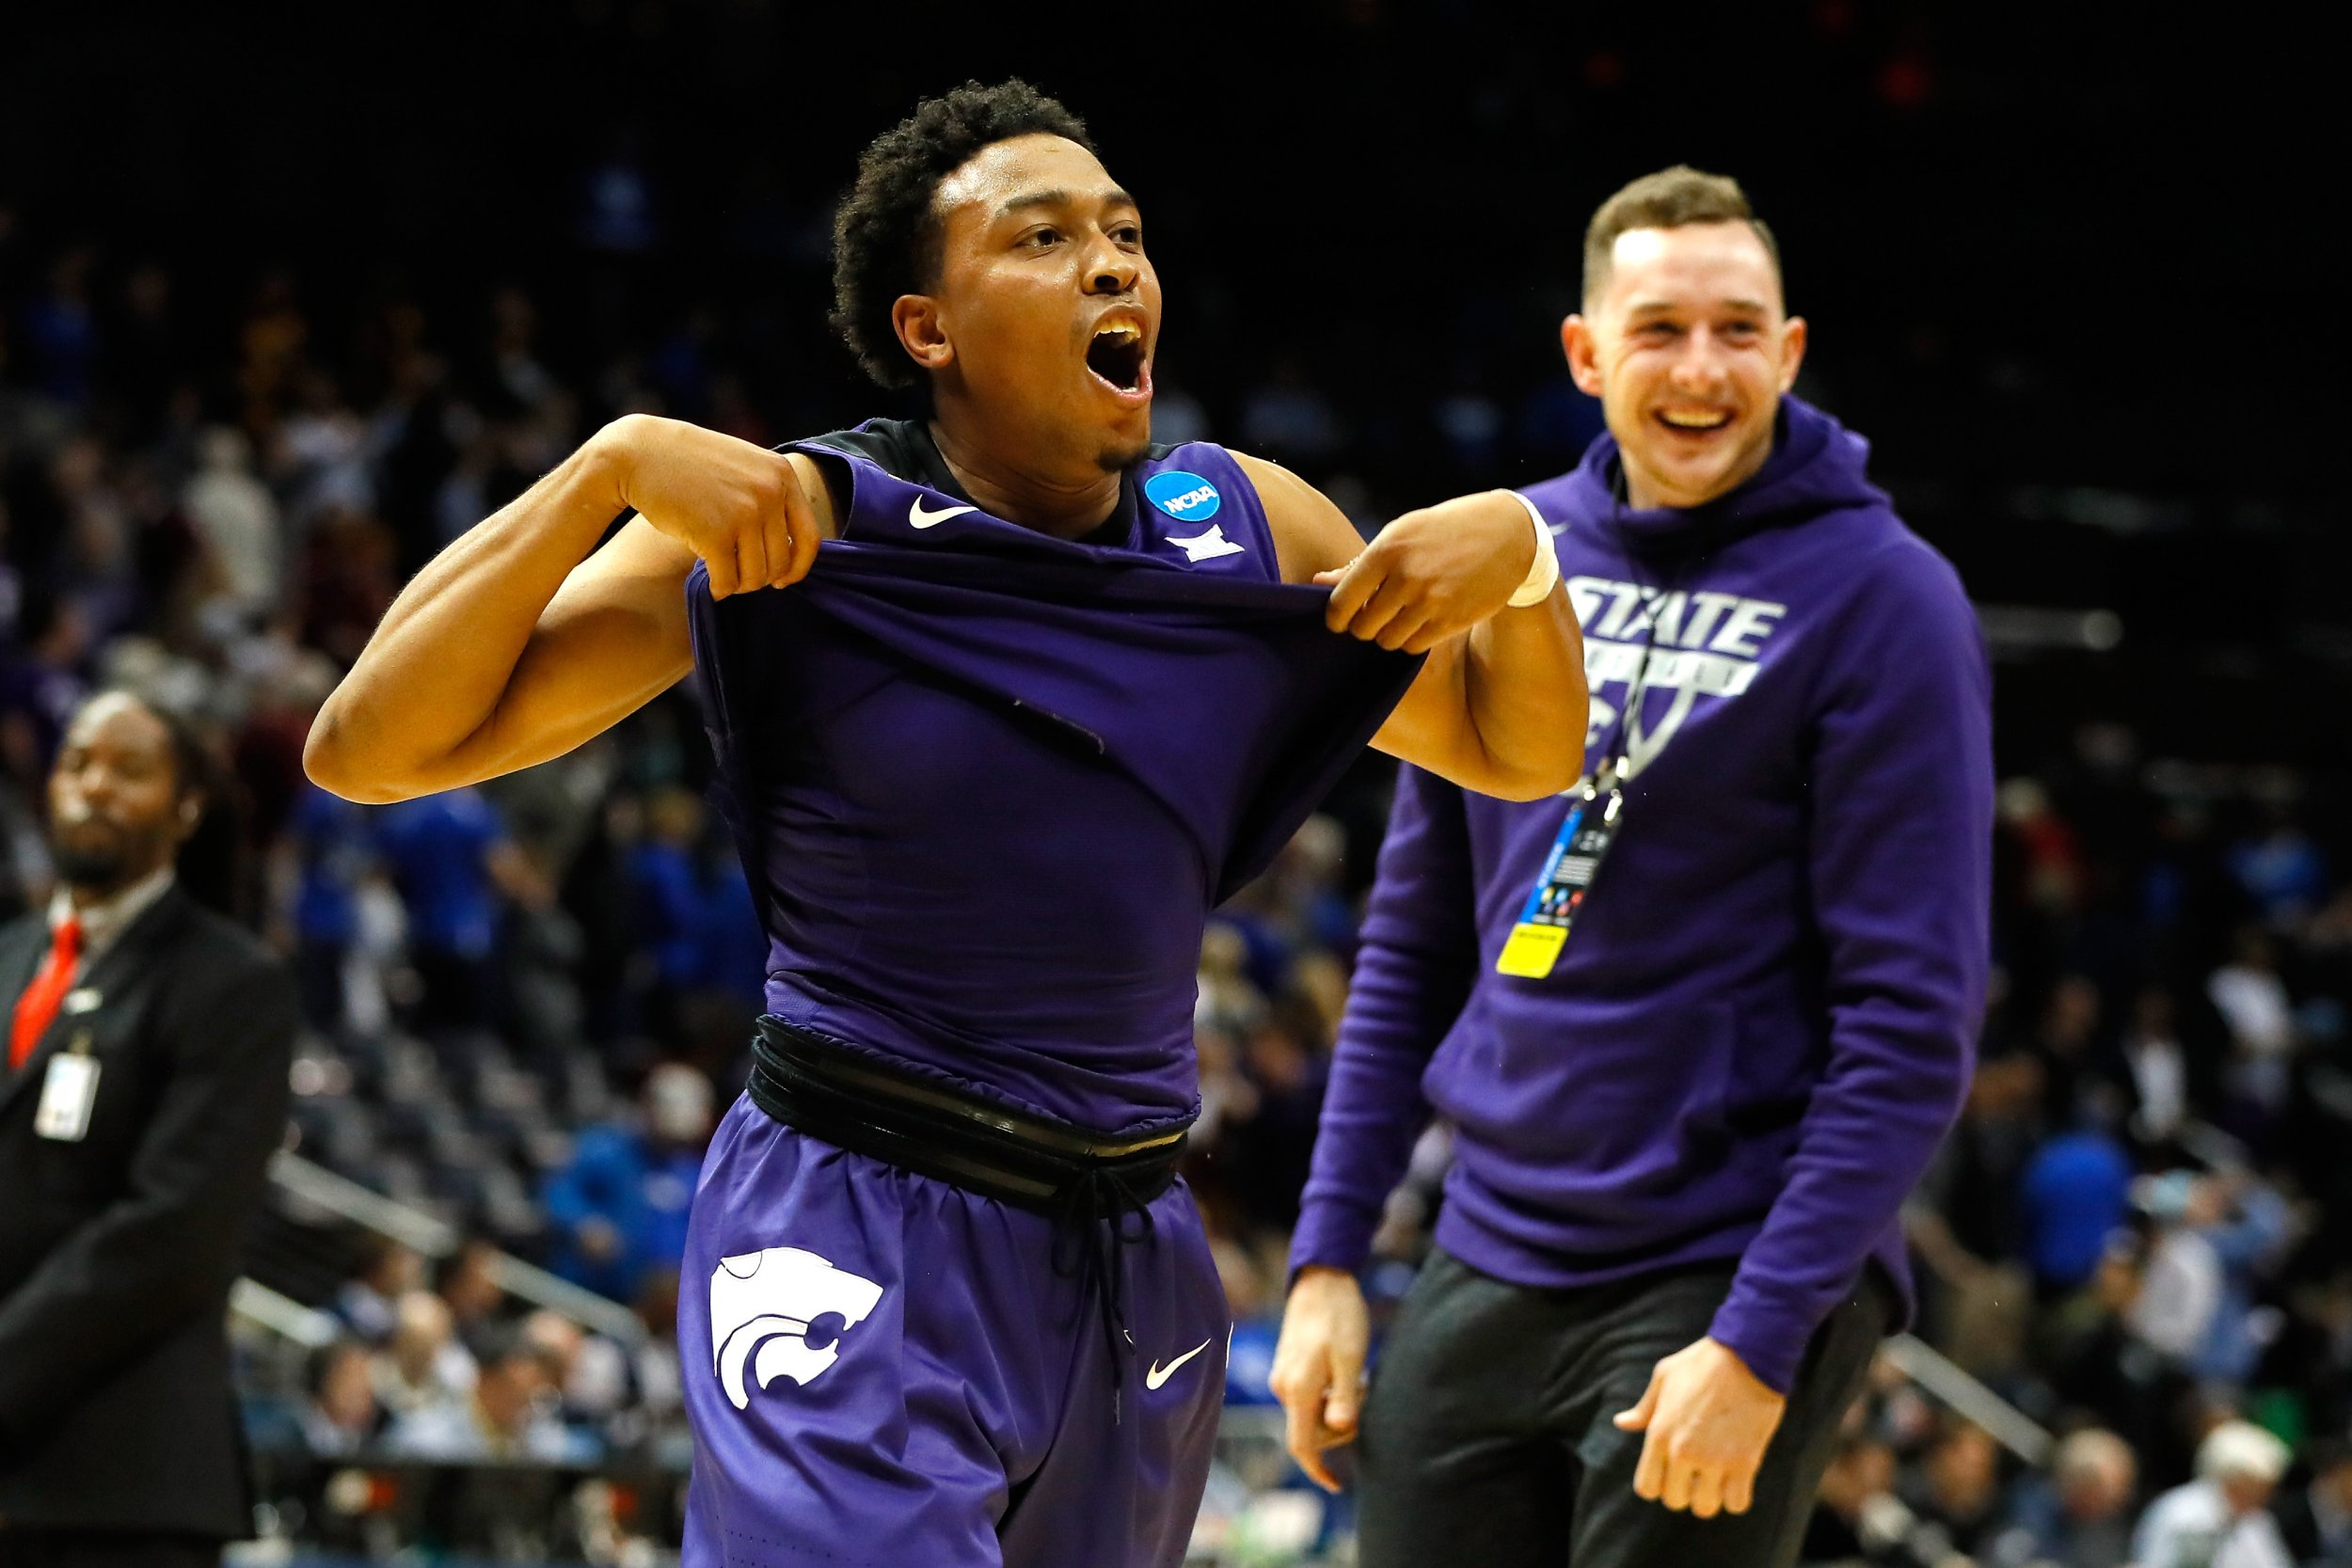 March Madness: More Busted Brackets in Elite Eight After